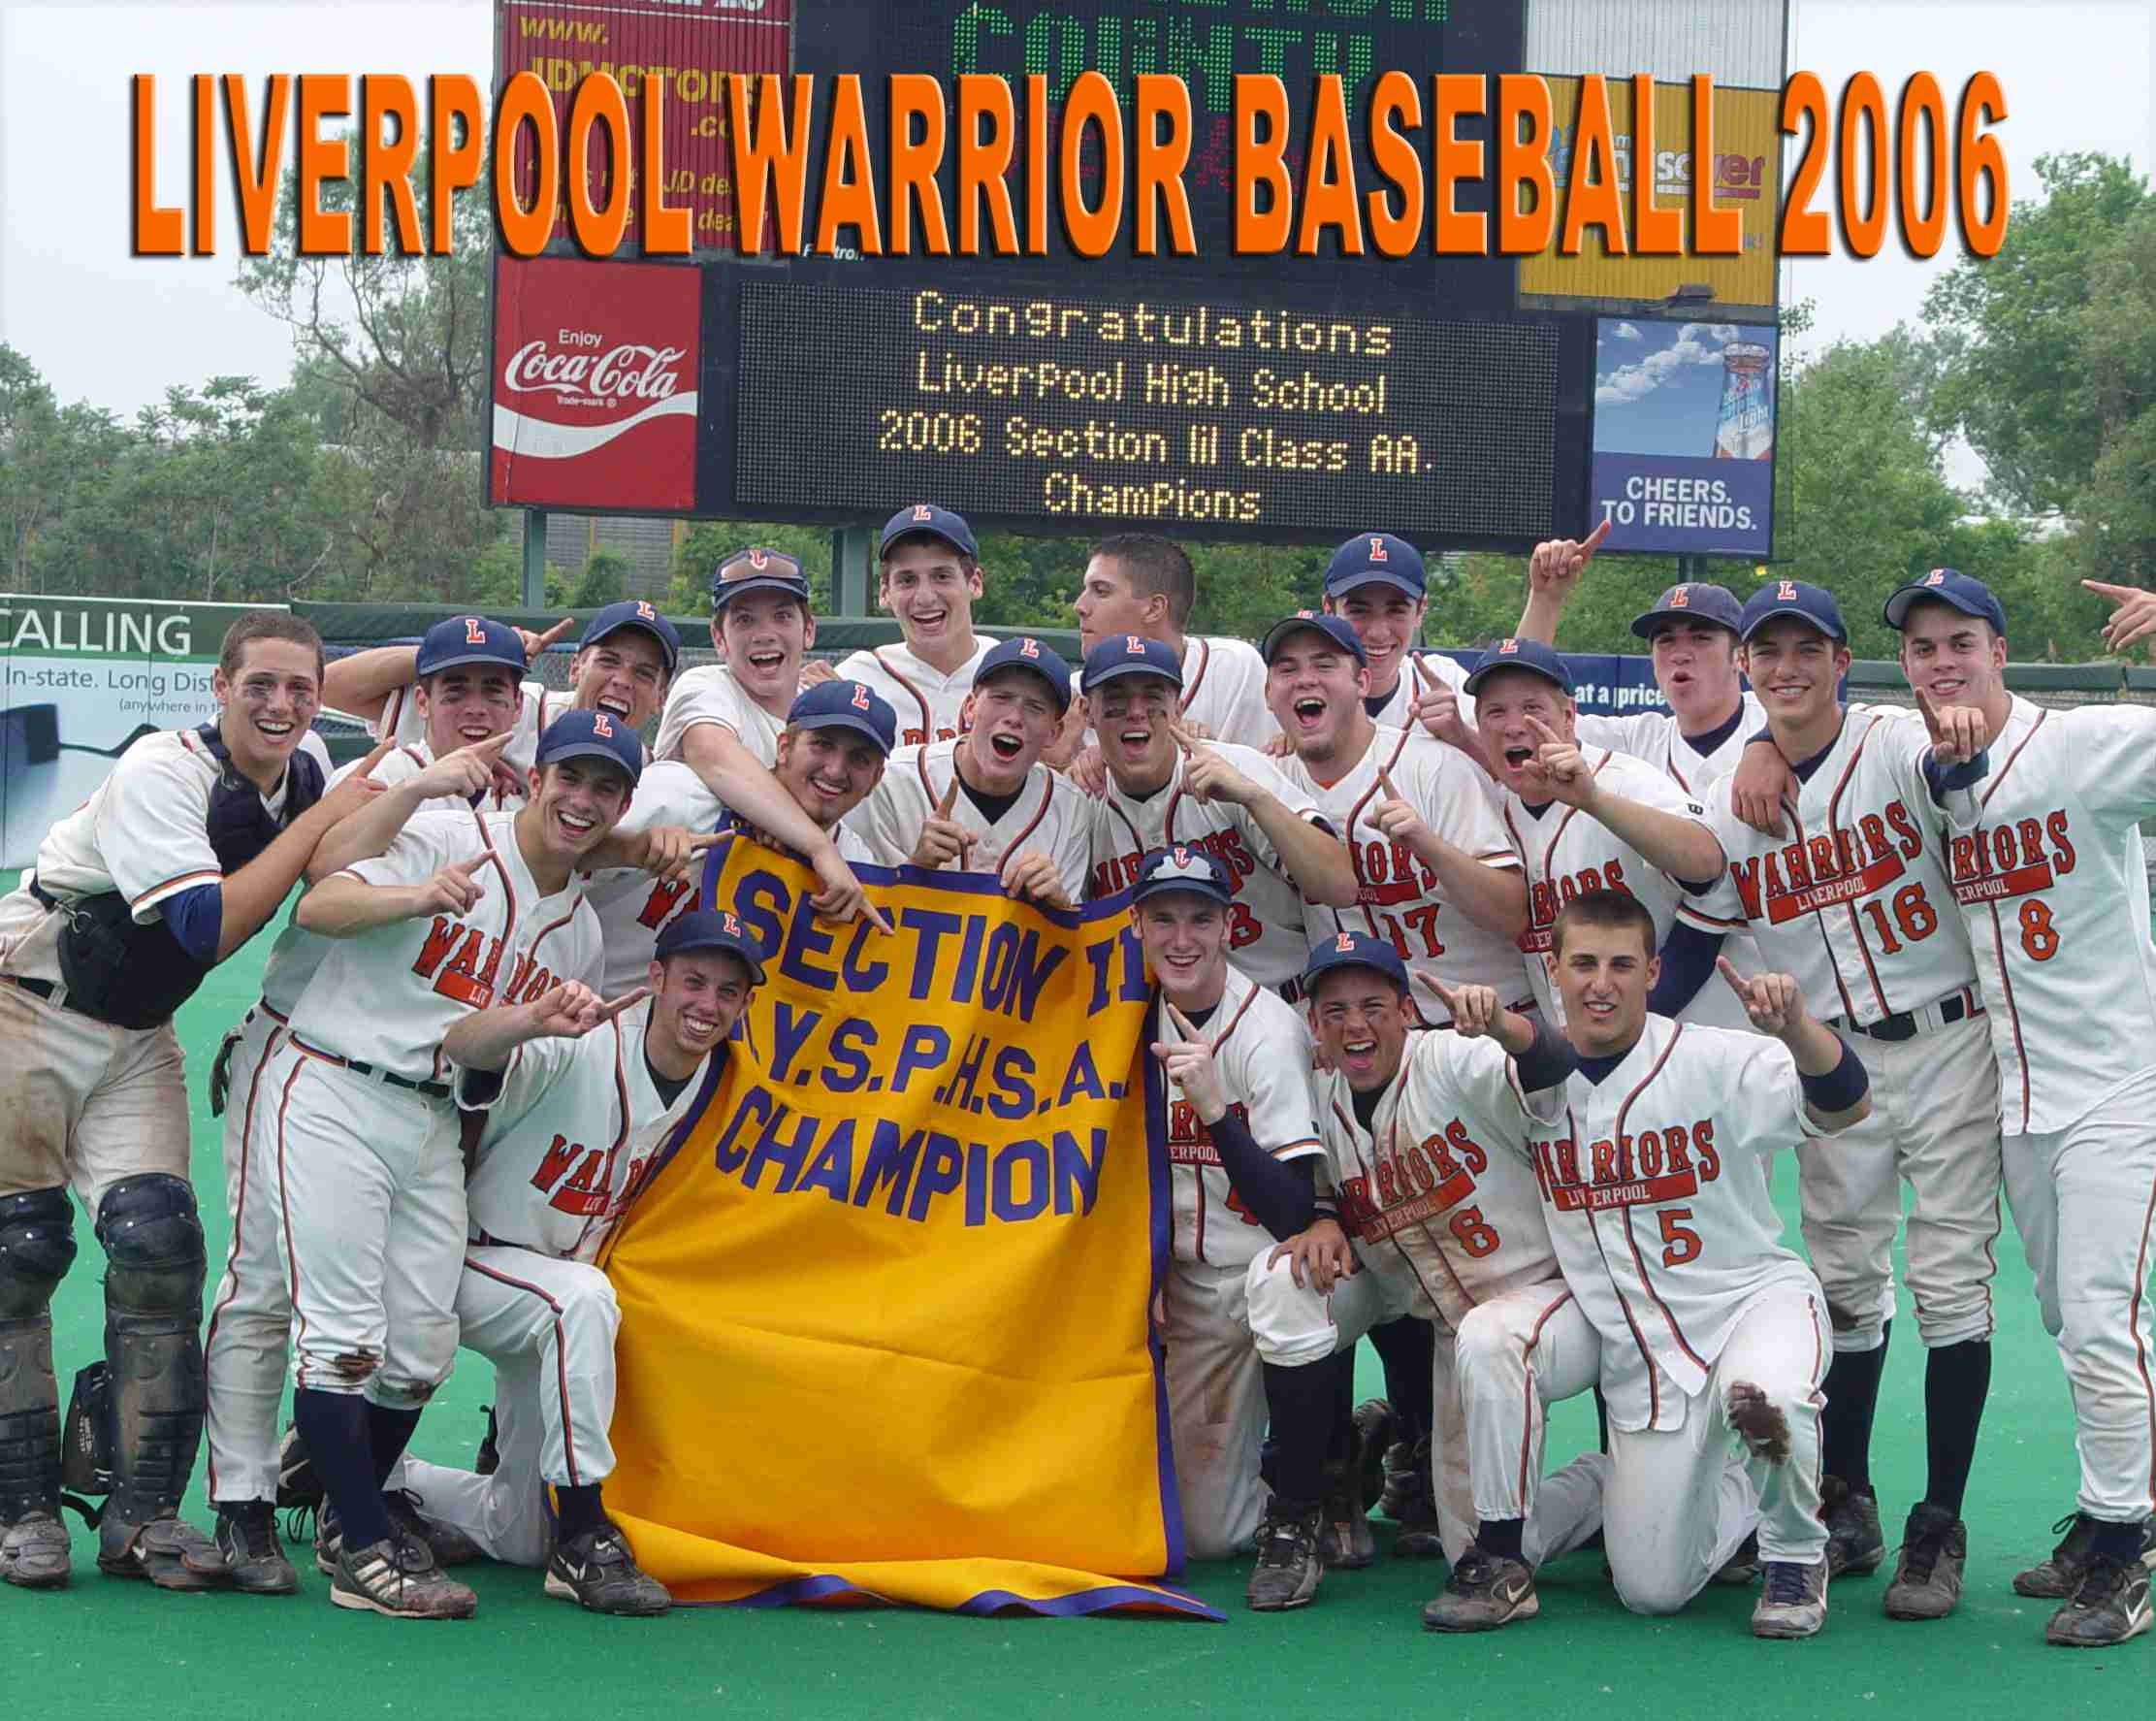 2006 Section III Class AA Champions